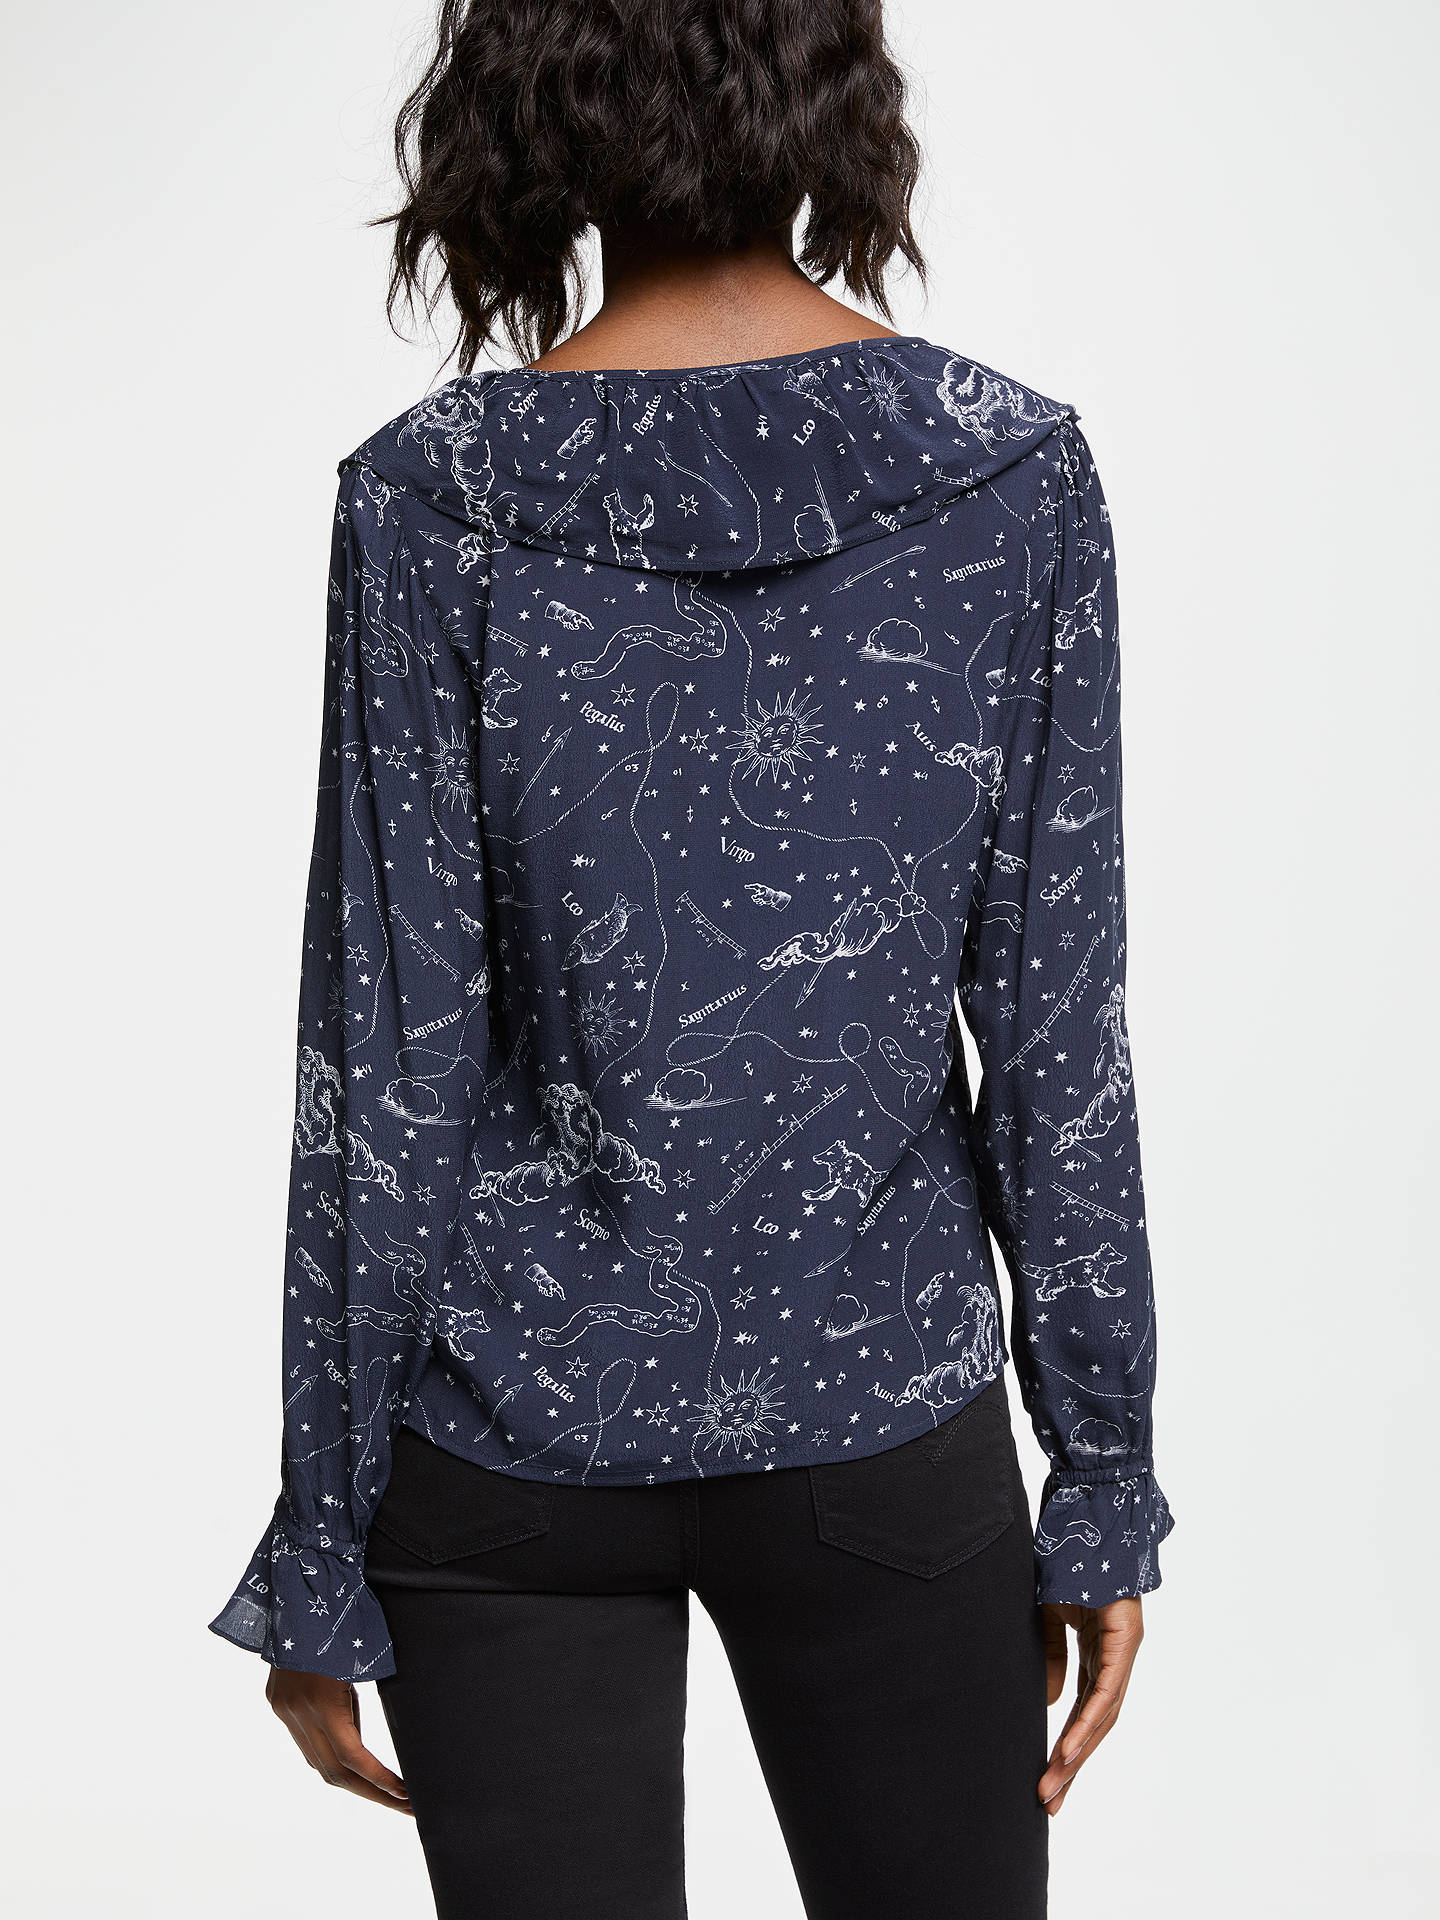 Lily and Lionel Joni Astrology Top, Navy at John Lewis